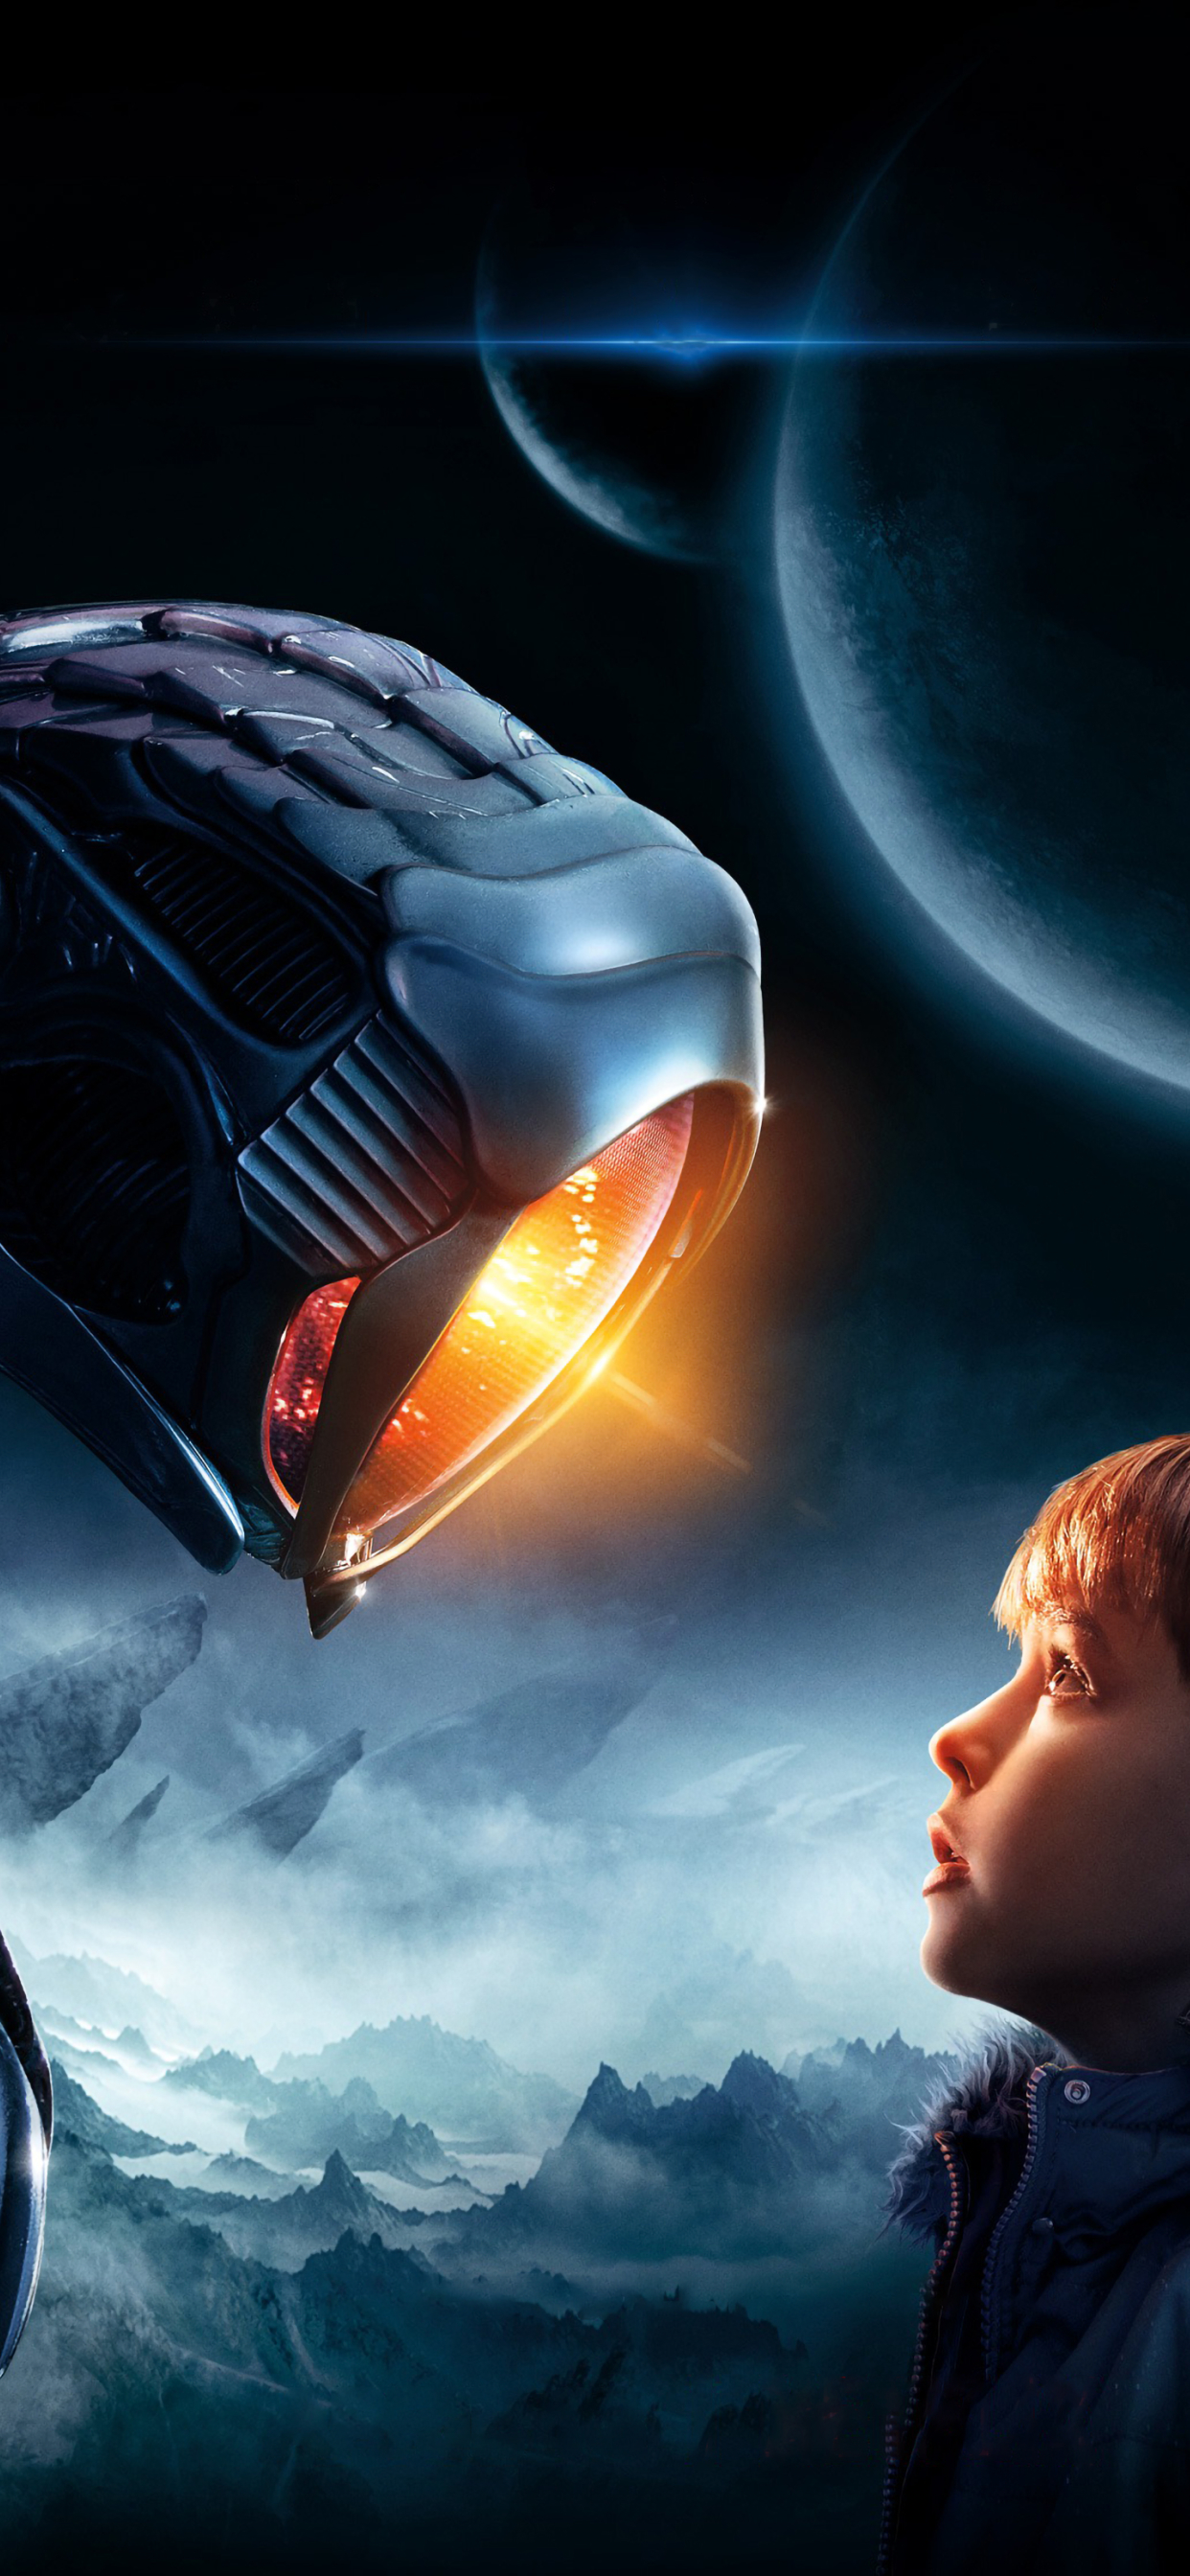 1242x2688 Lost In Space Iphone Xs Max Wallpaper Hd Tv Series 4k Wallpapers Images Photos And Background